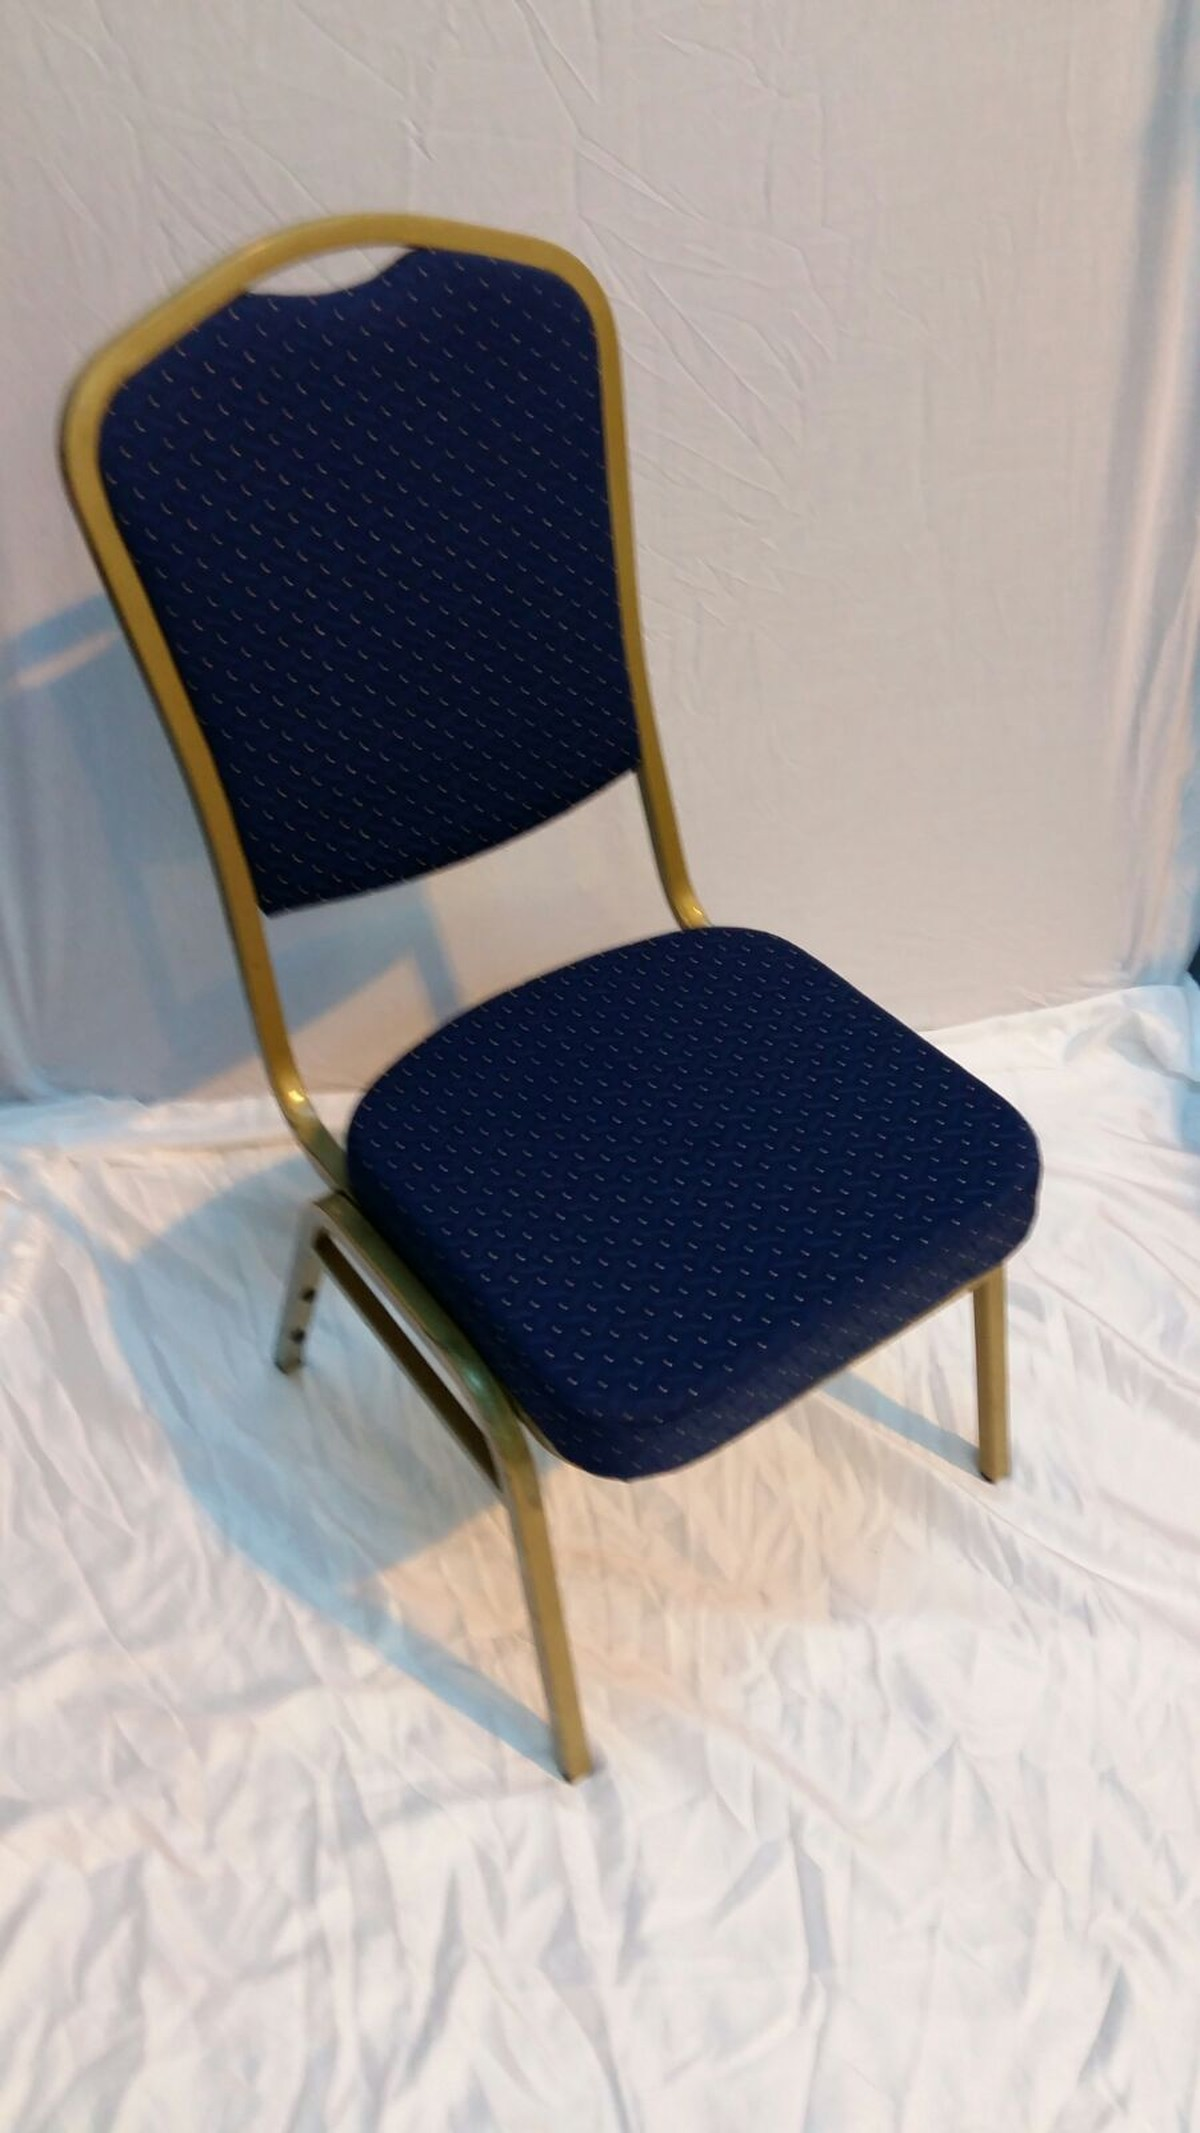 event chairs for sale massage chair pad car secondhand hotel furniture banquet 200x blue